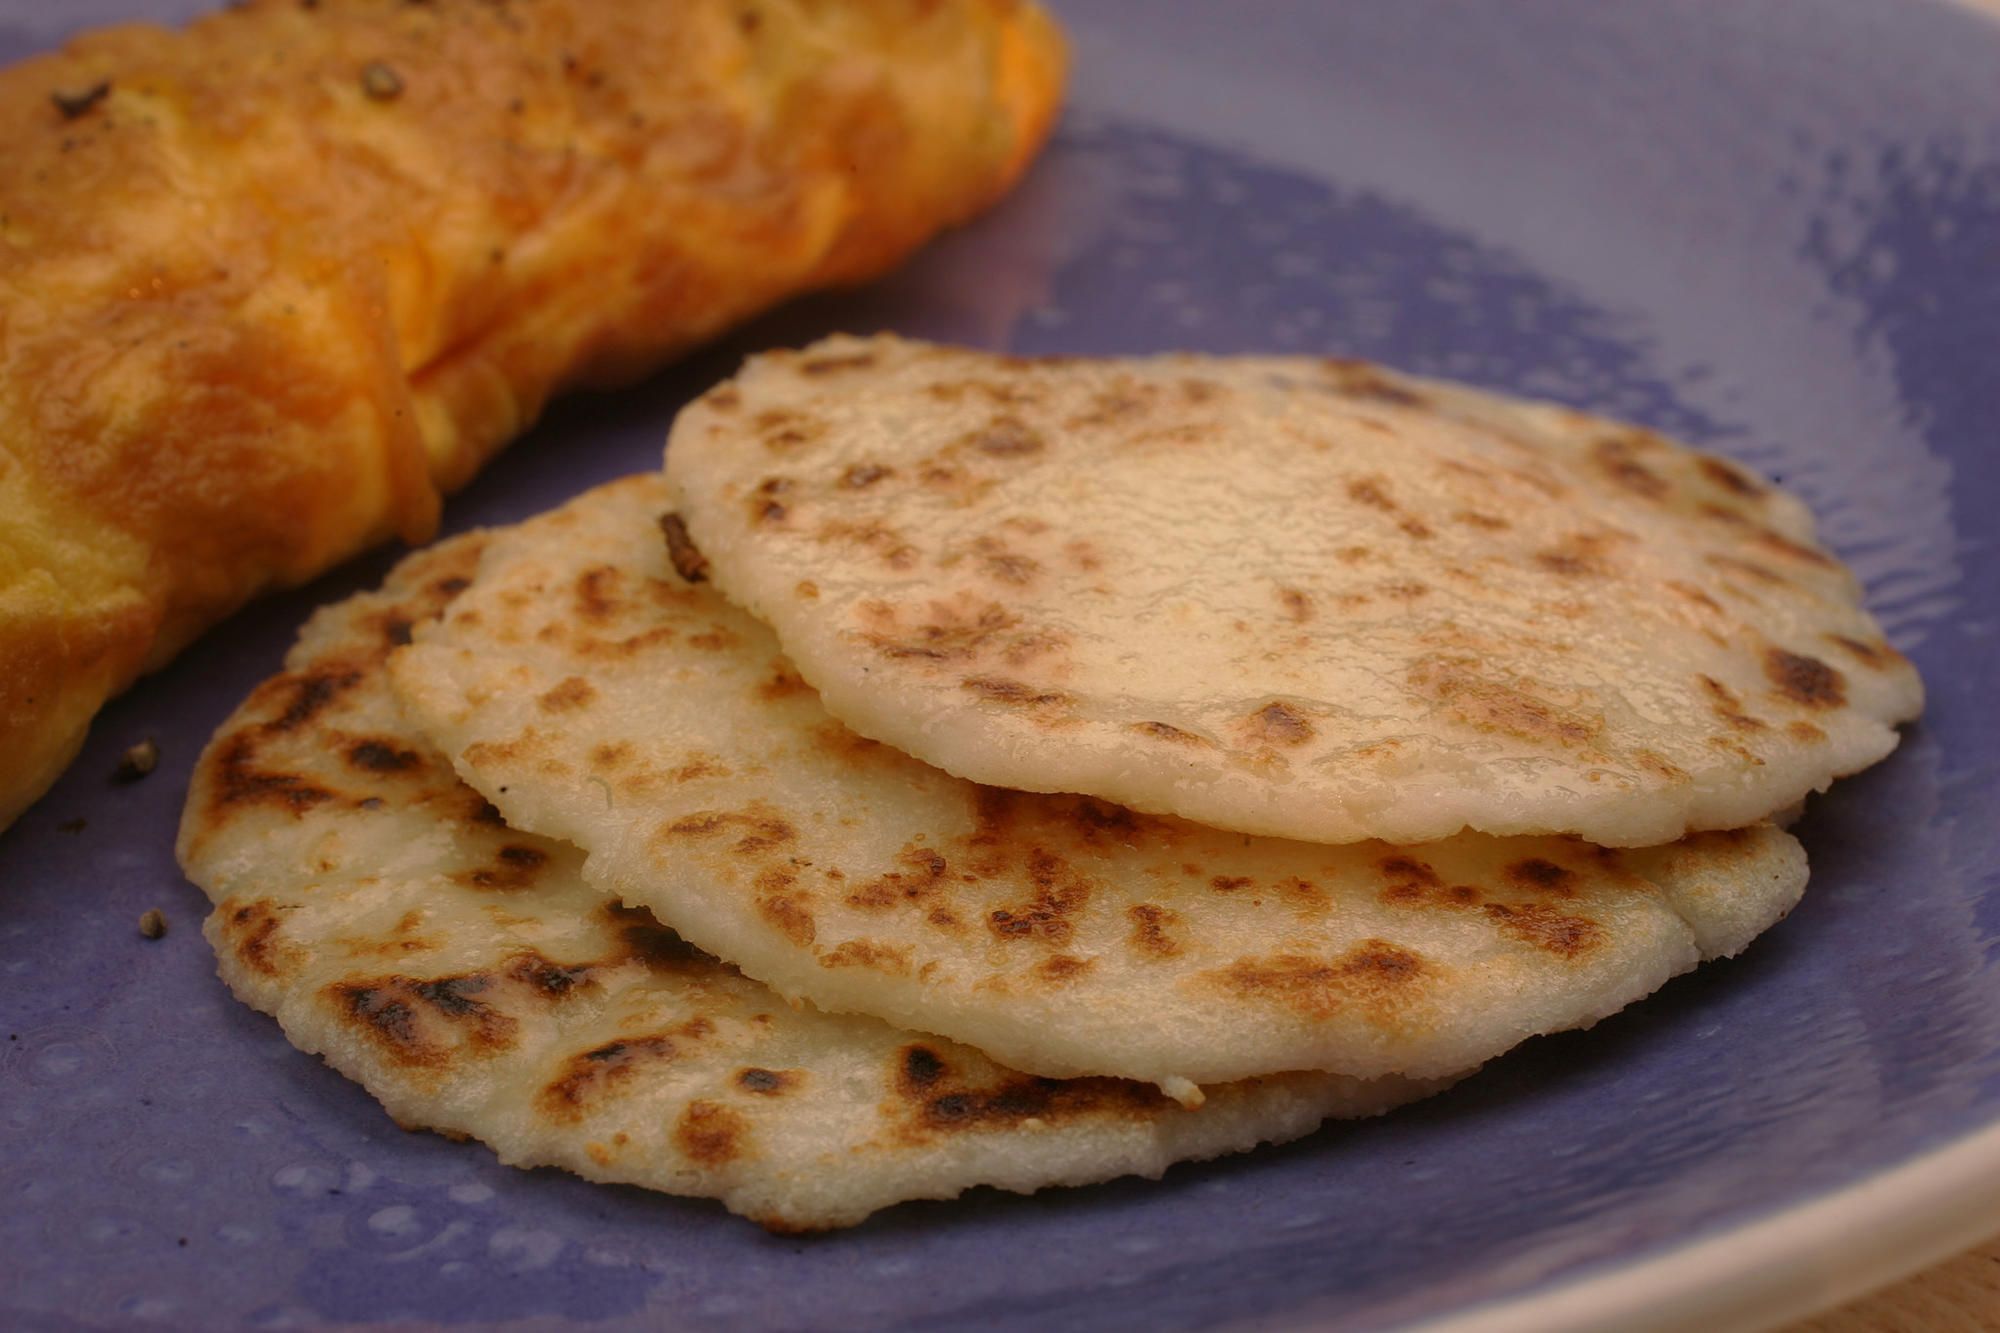 Arepas made of corn flour